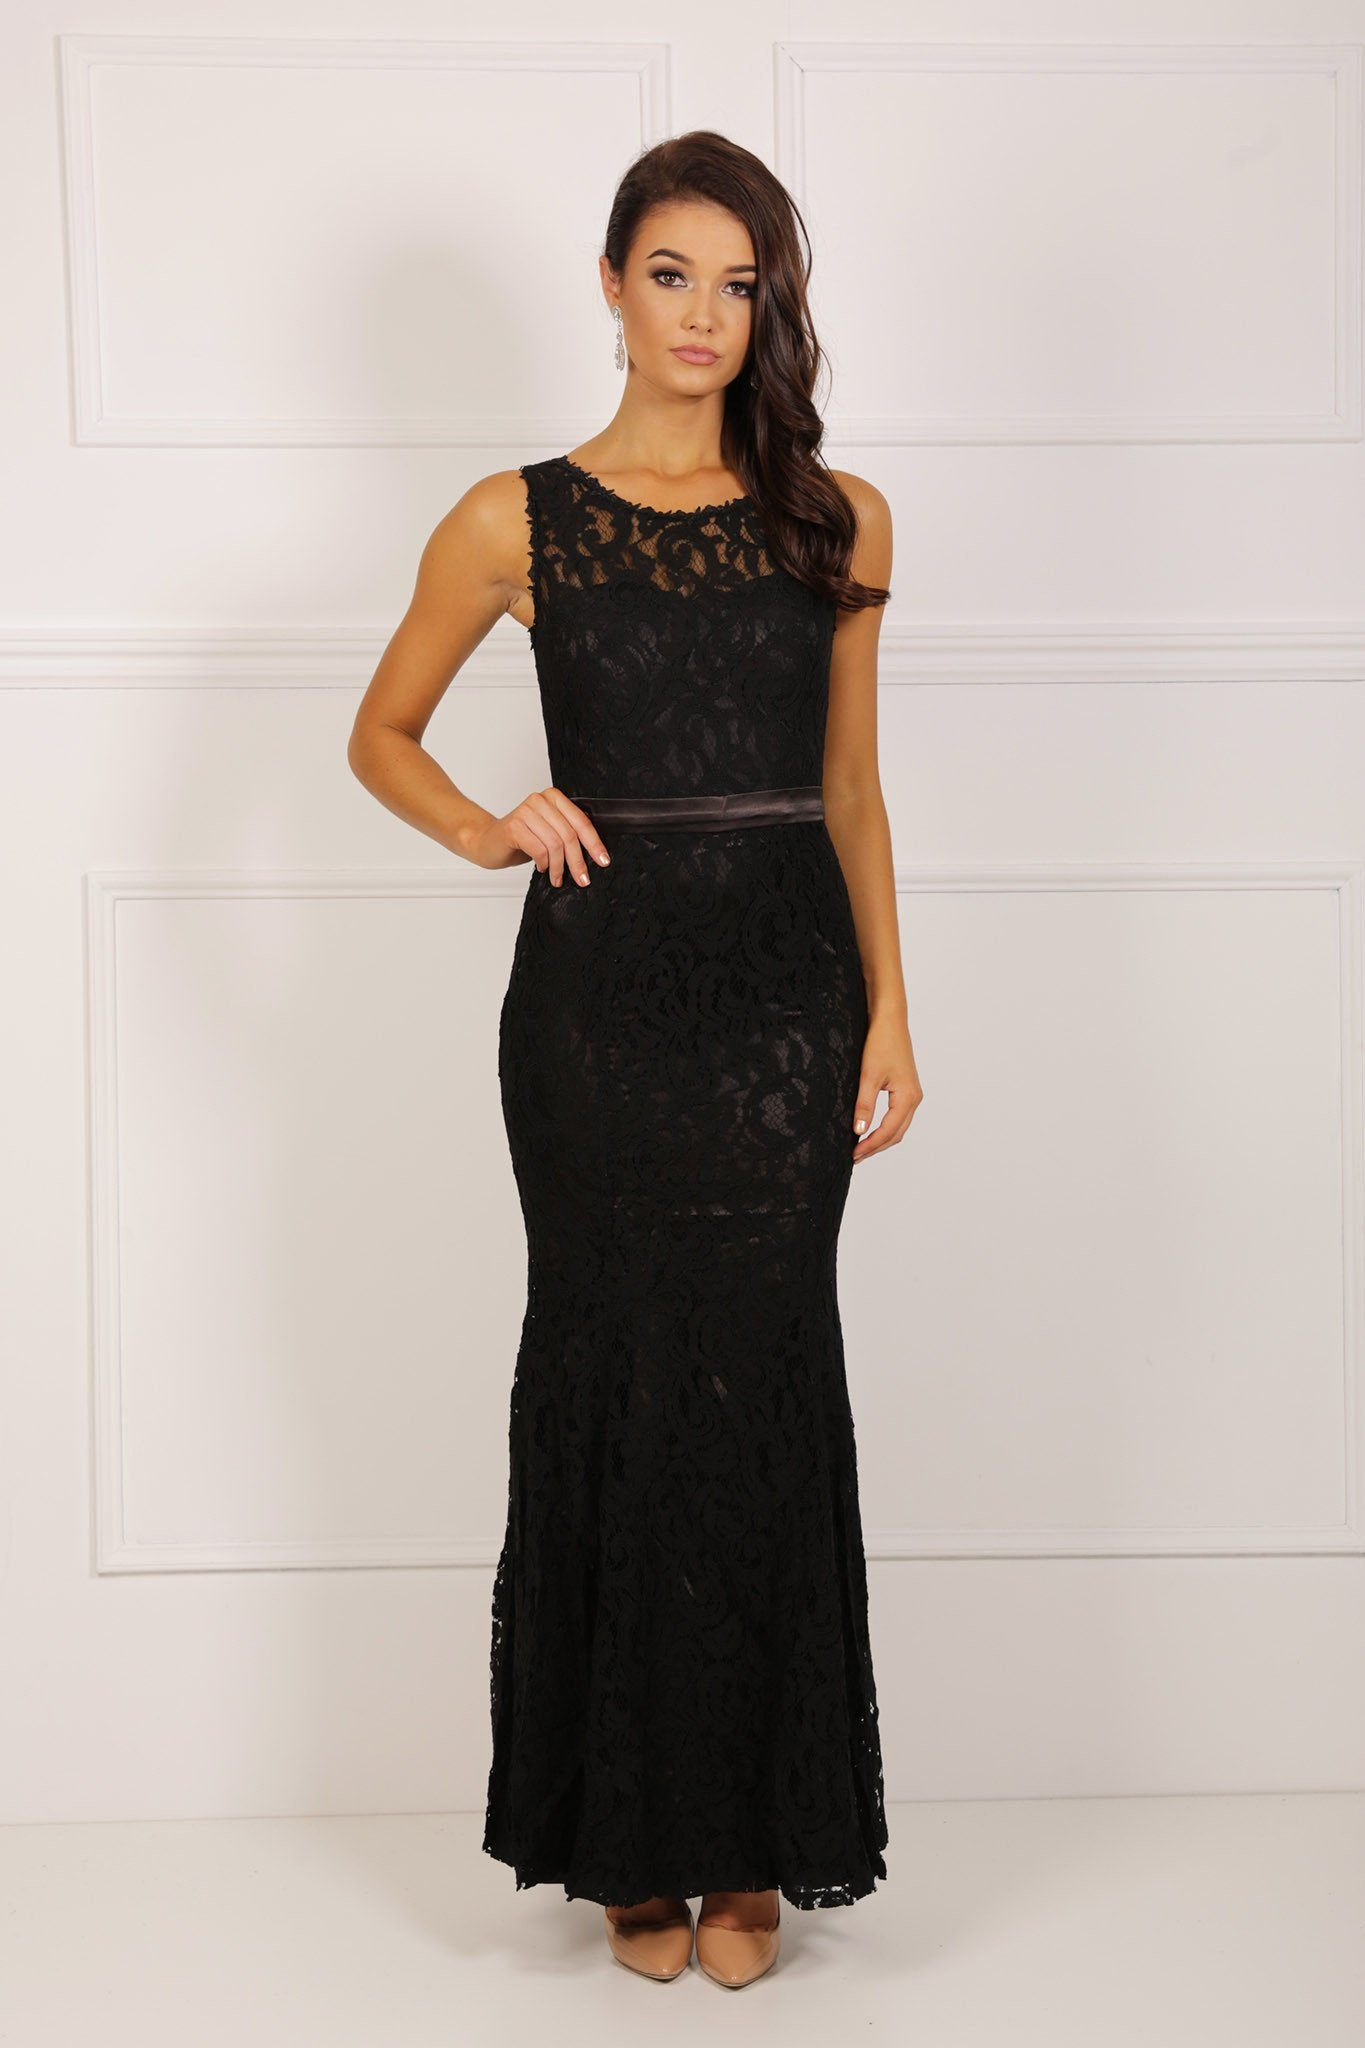 Black sleeveless lace maxi dress scoop neck with black satin belt and black satin underlining